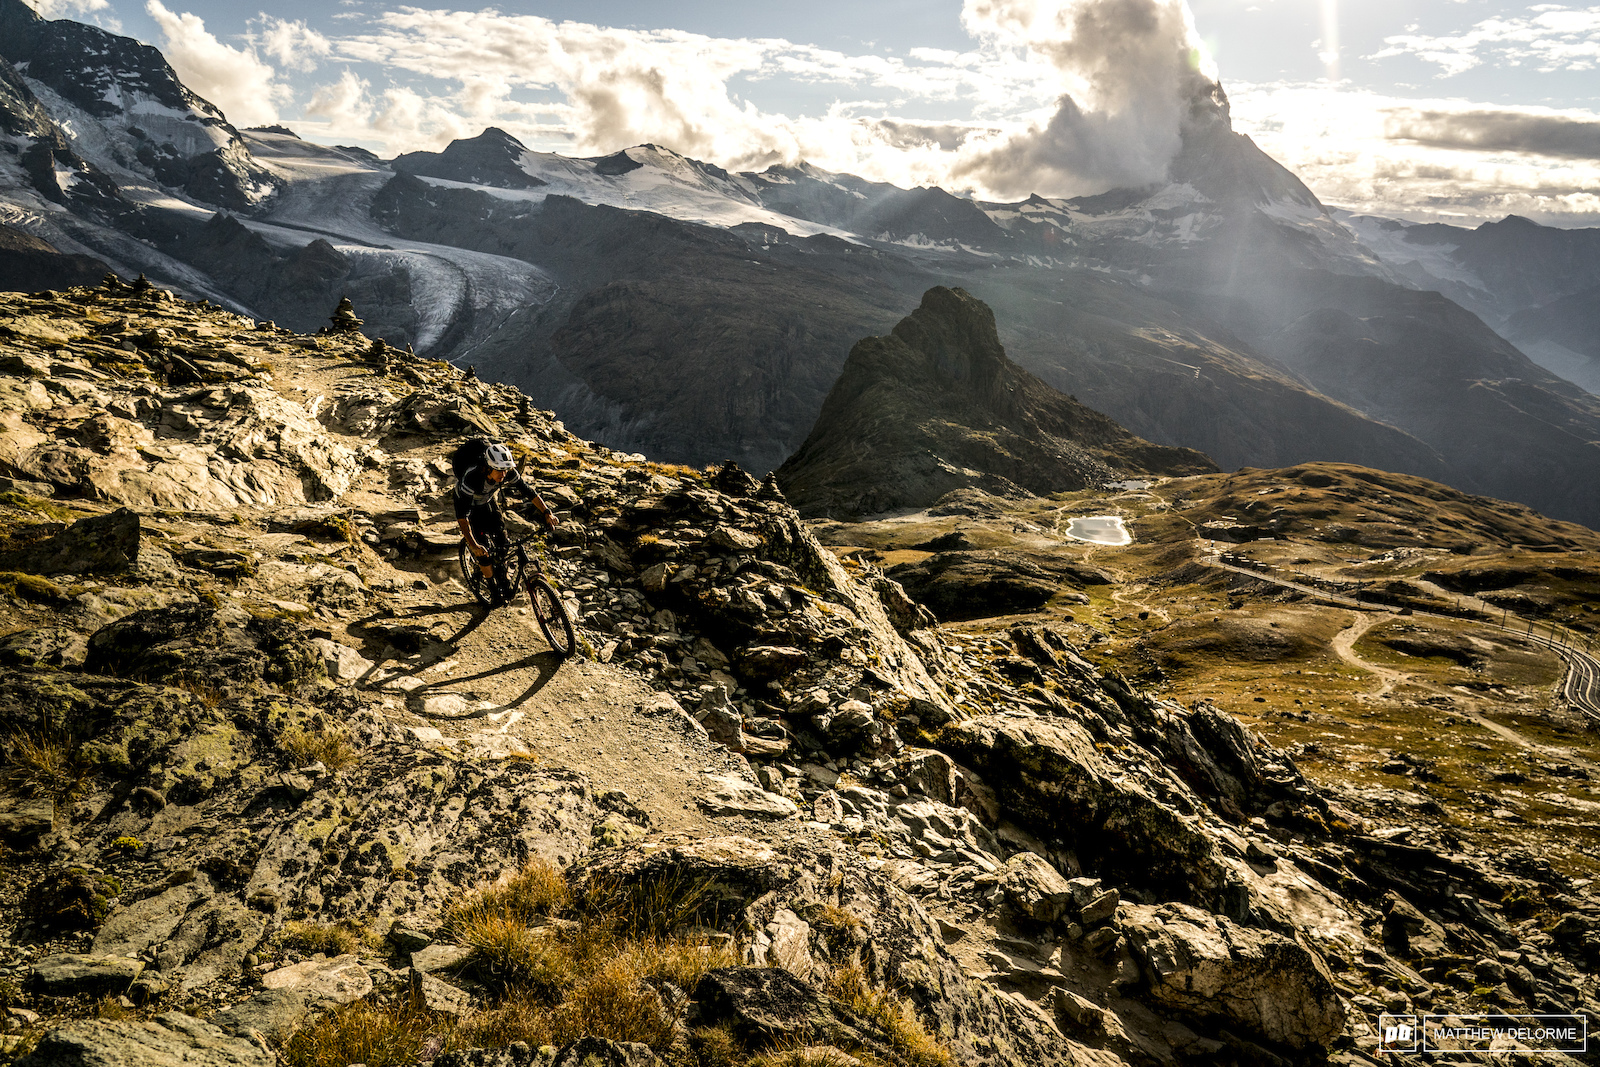 Steep and rough terrain with epic views sums up Zermatt. Though the views come race day may be obscured by clouds and rain.